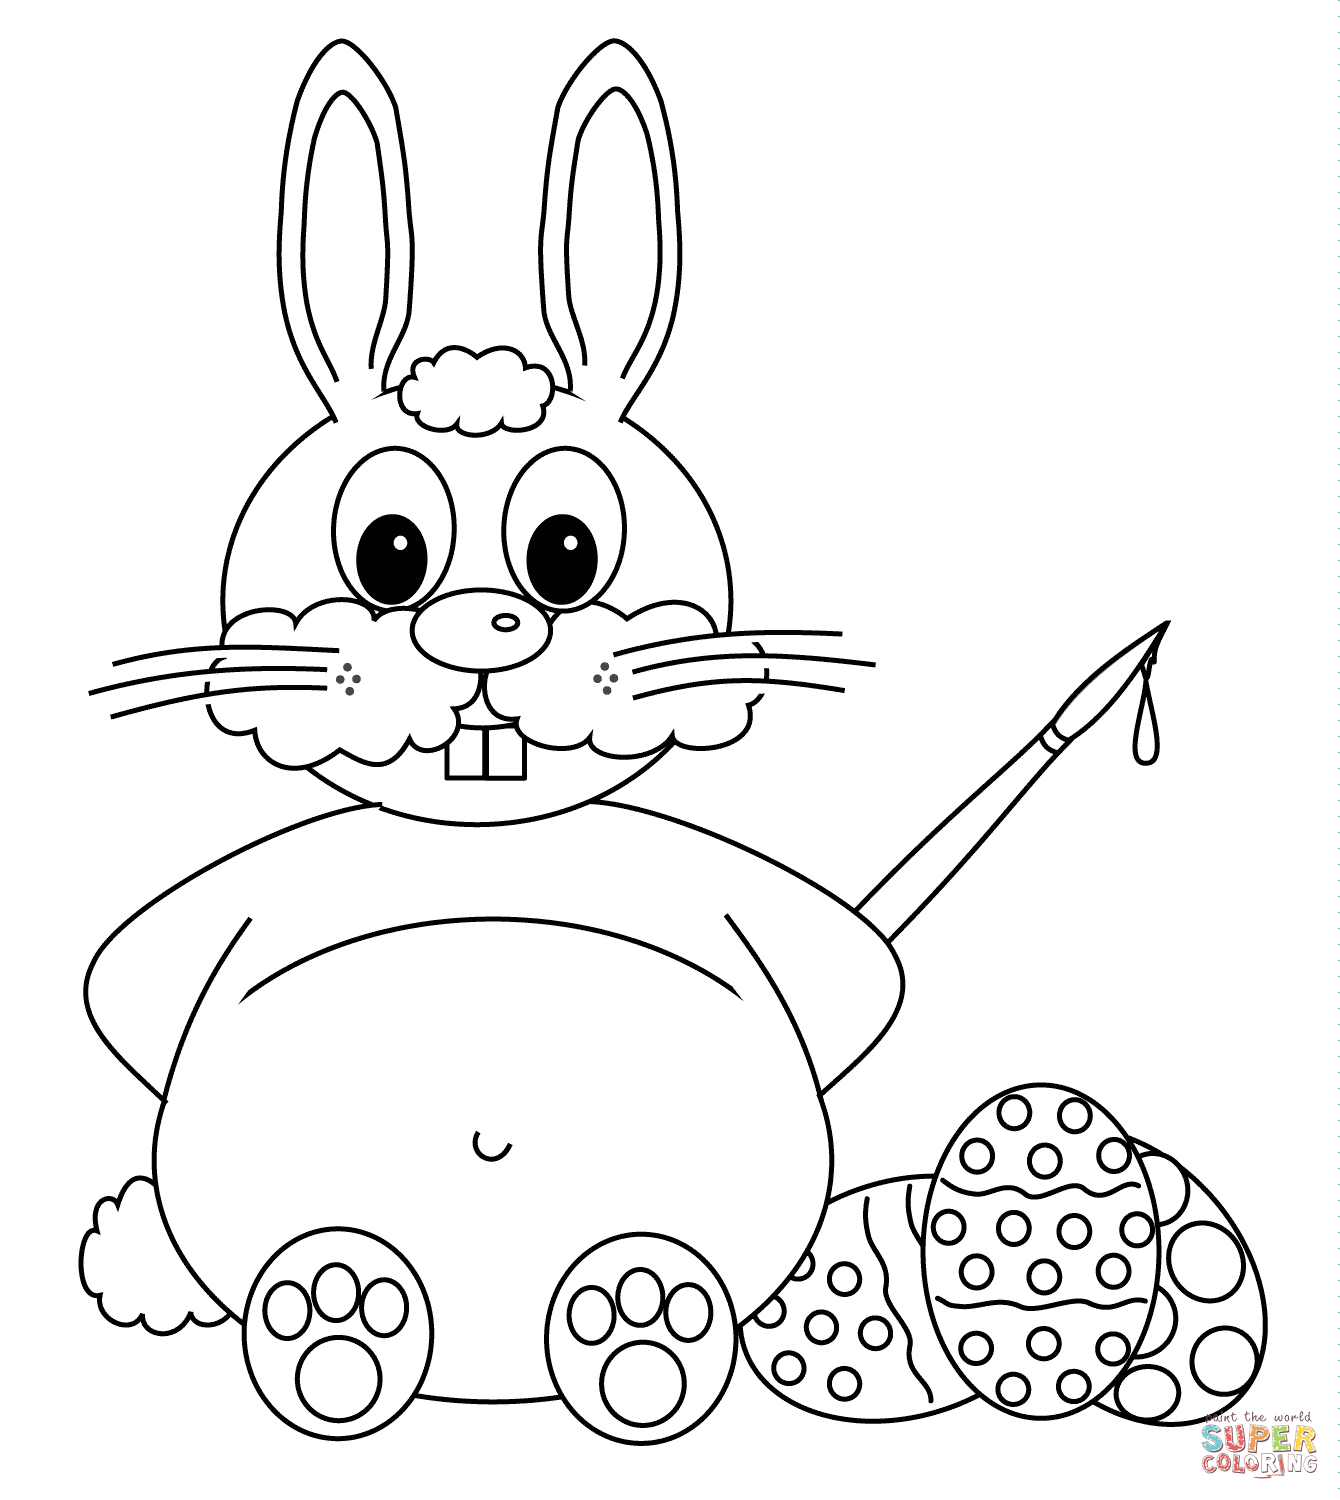 1340x1500 Drawn Rabbid Easter Bunny